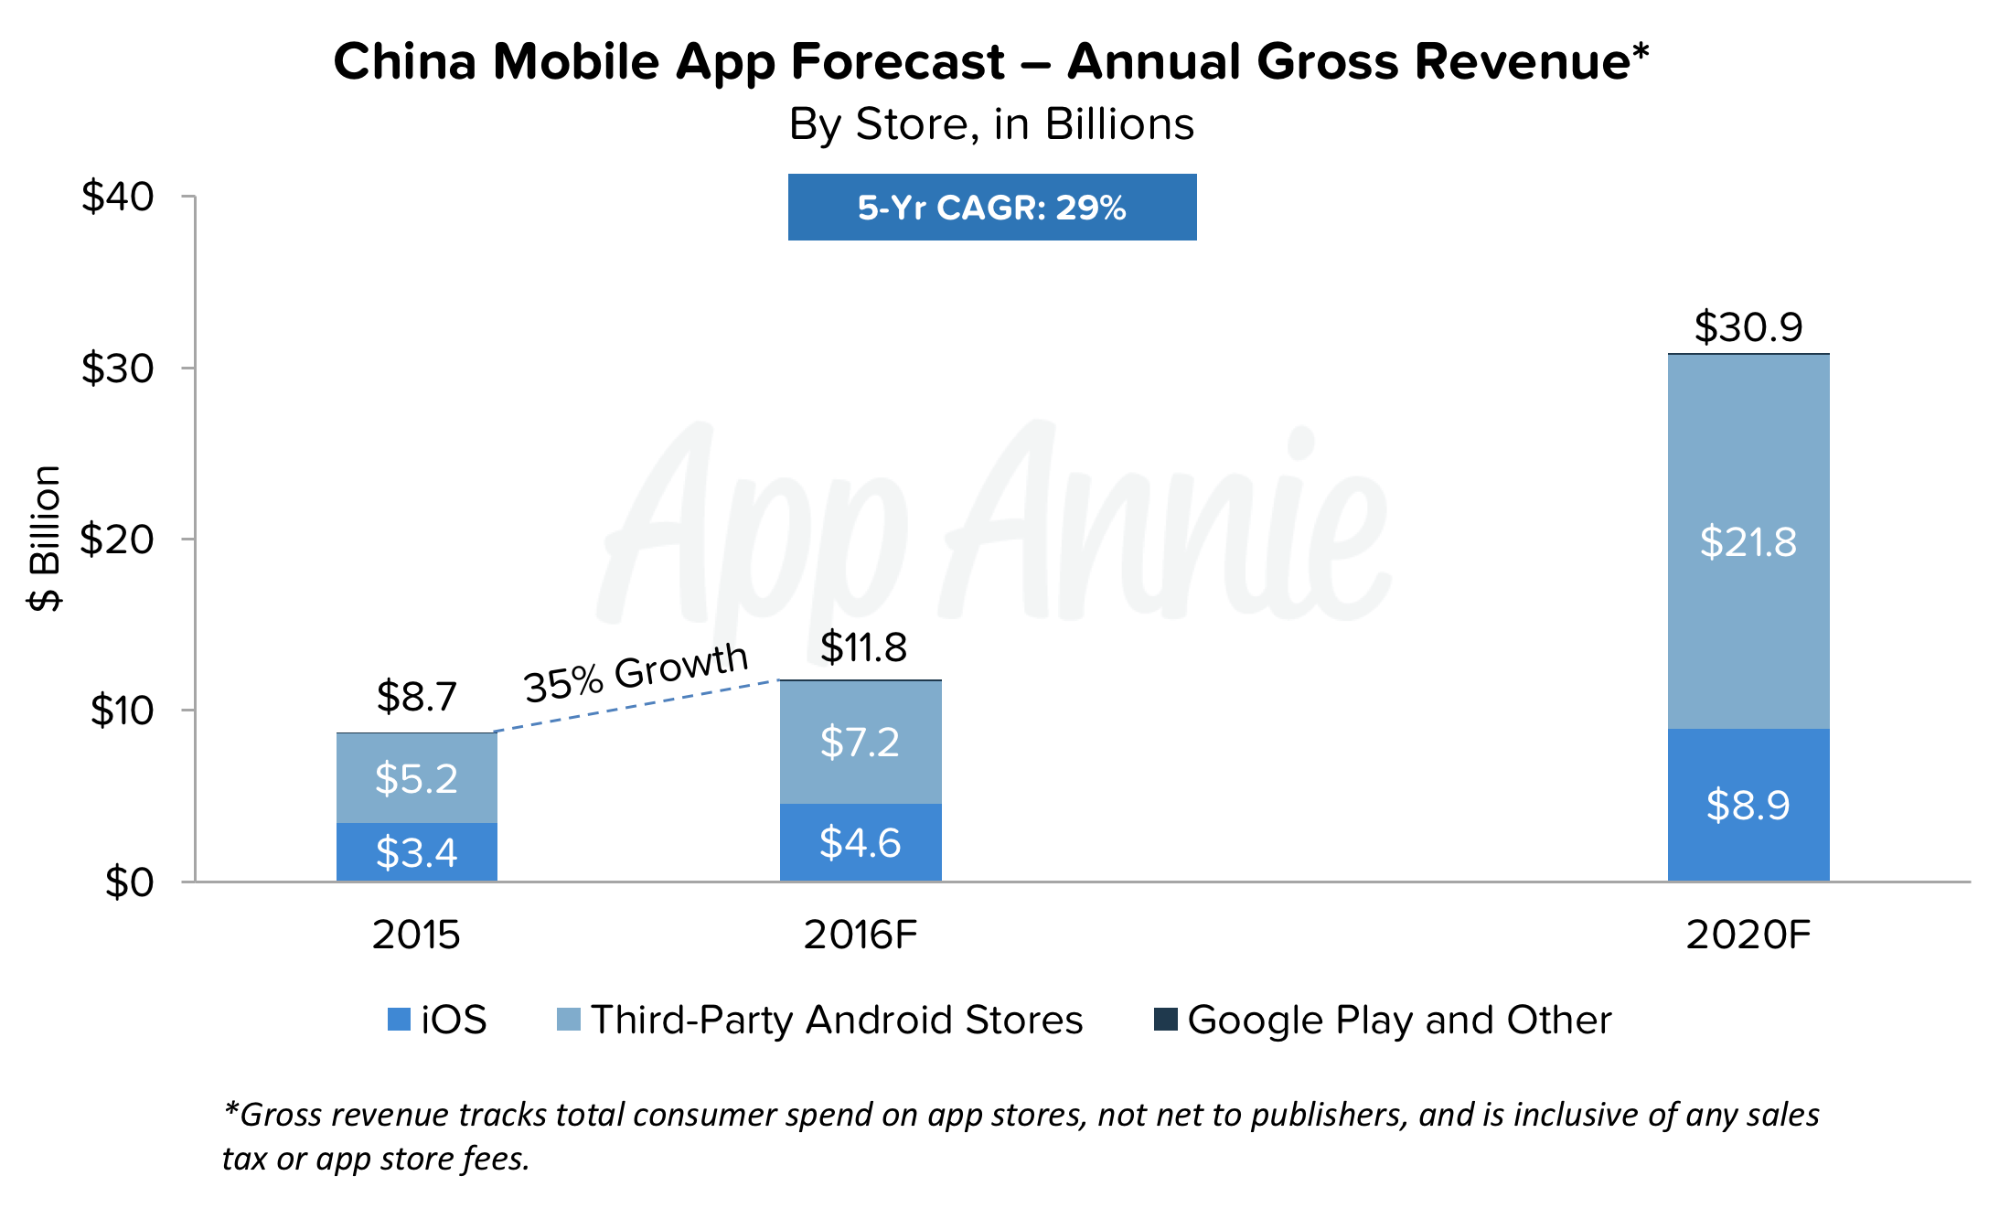 China Mobile App Forecast Annual Gross Revenue